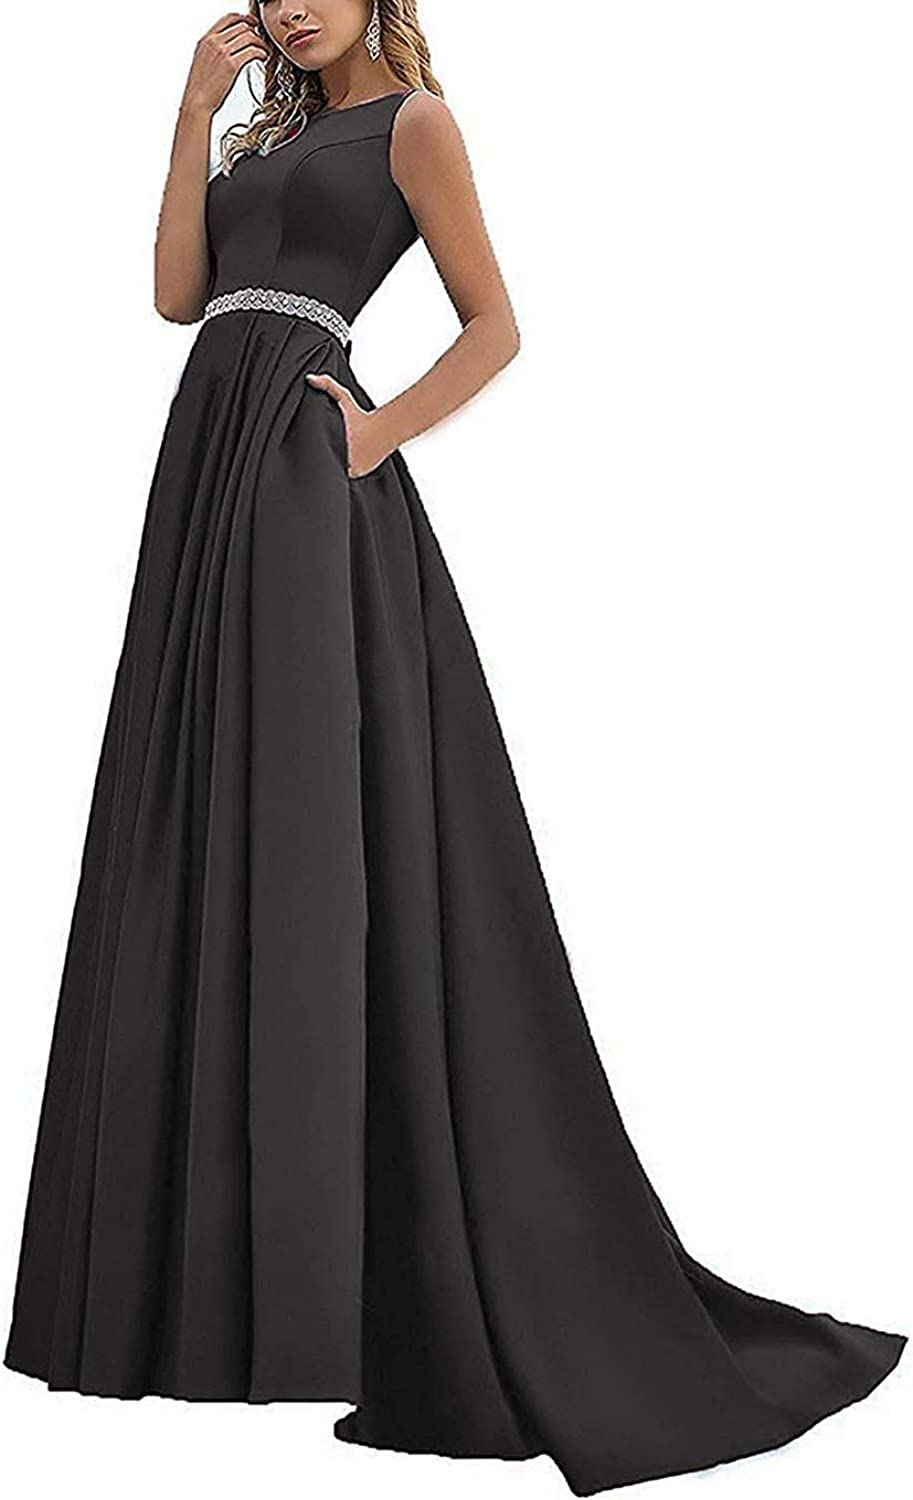 Beaded Satin Prom Dresses Long with Pockets Jewel Neckline Princess Ball Gown